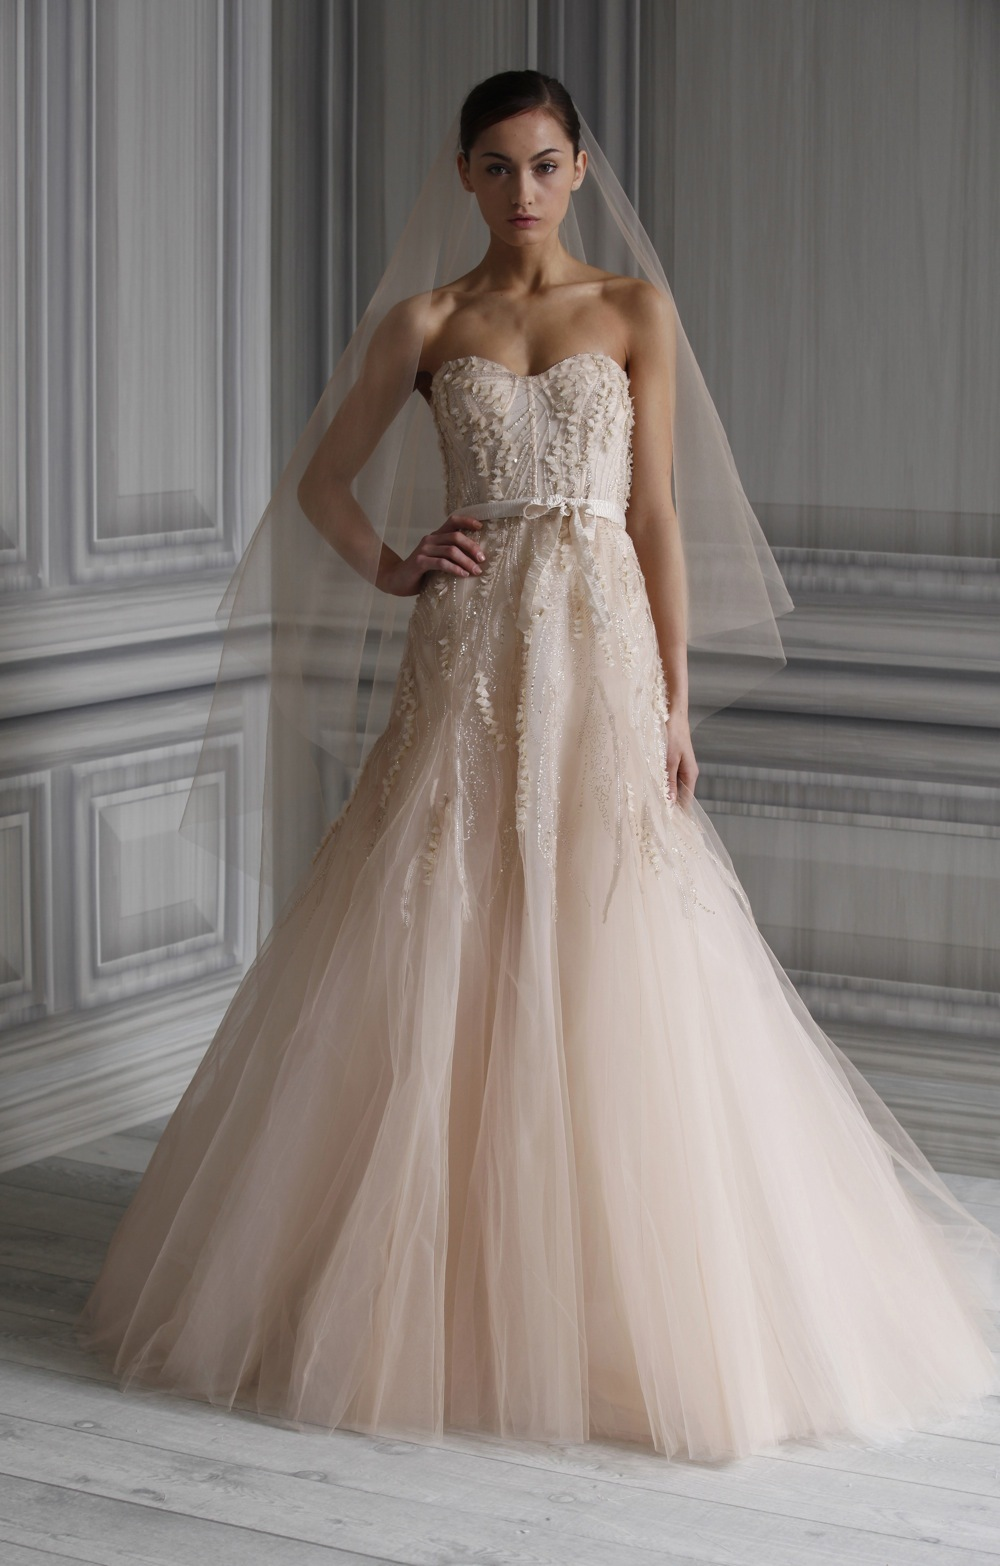 Wedding-dress-monique-lhuillier-bridal-gowns-spring-2012-candy.full